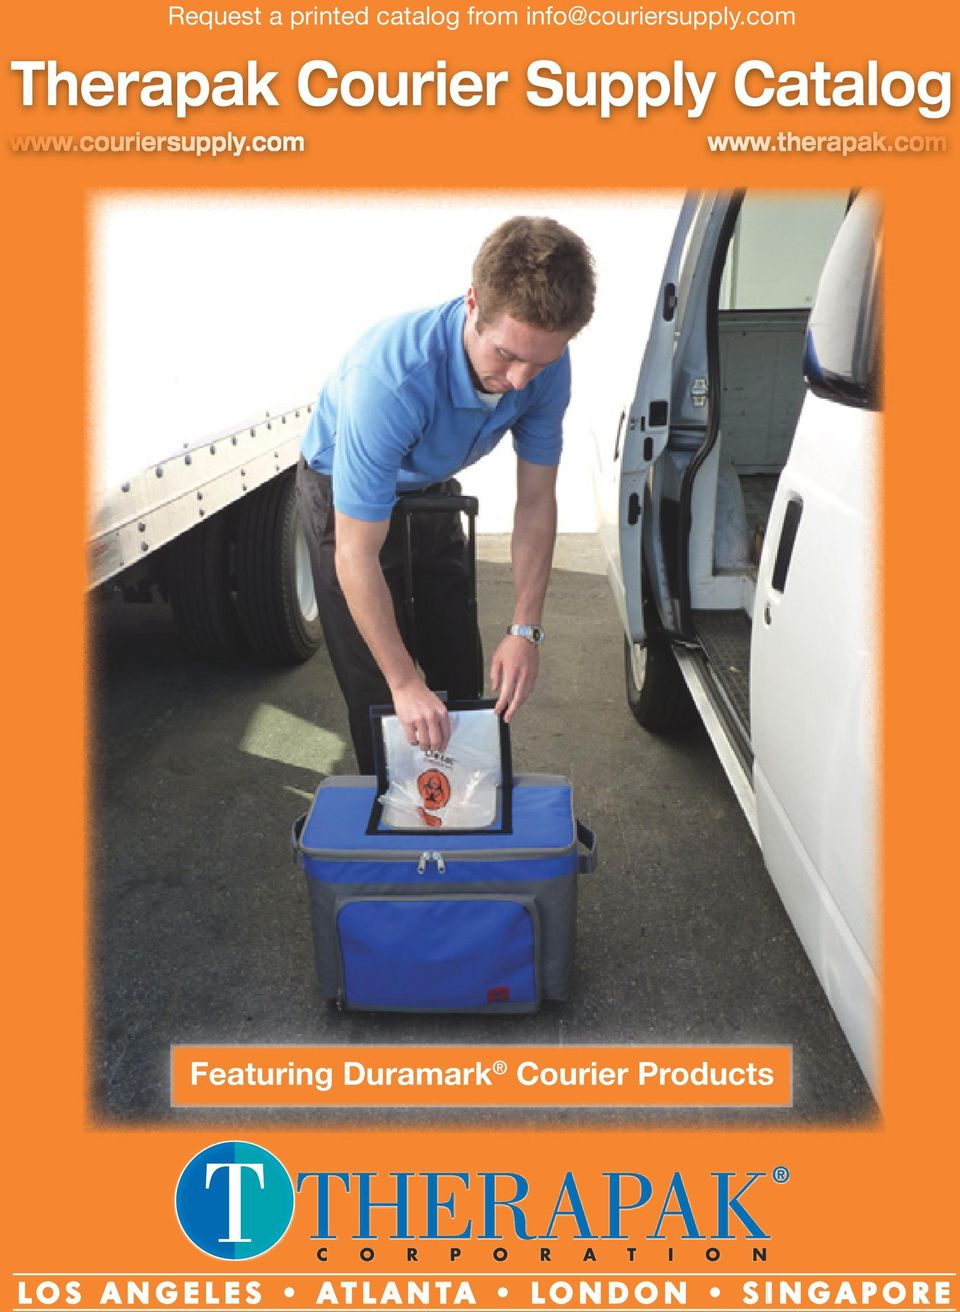 com Therapak Courier Supply Catalog www.